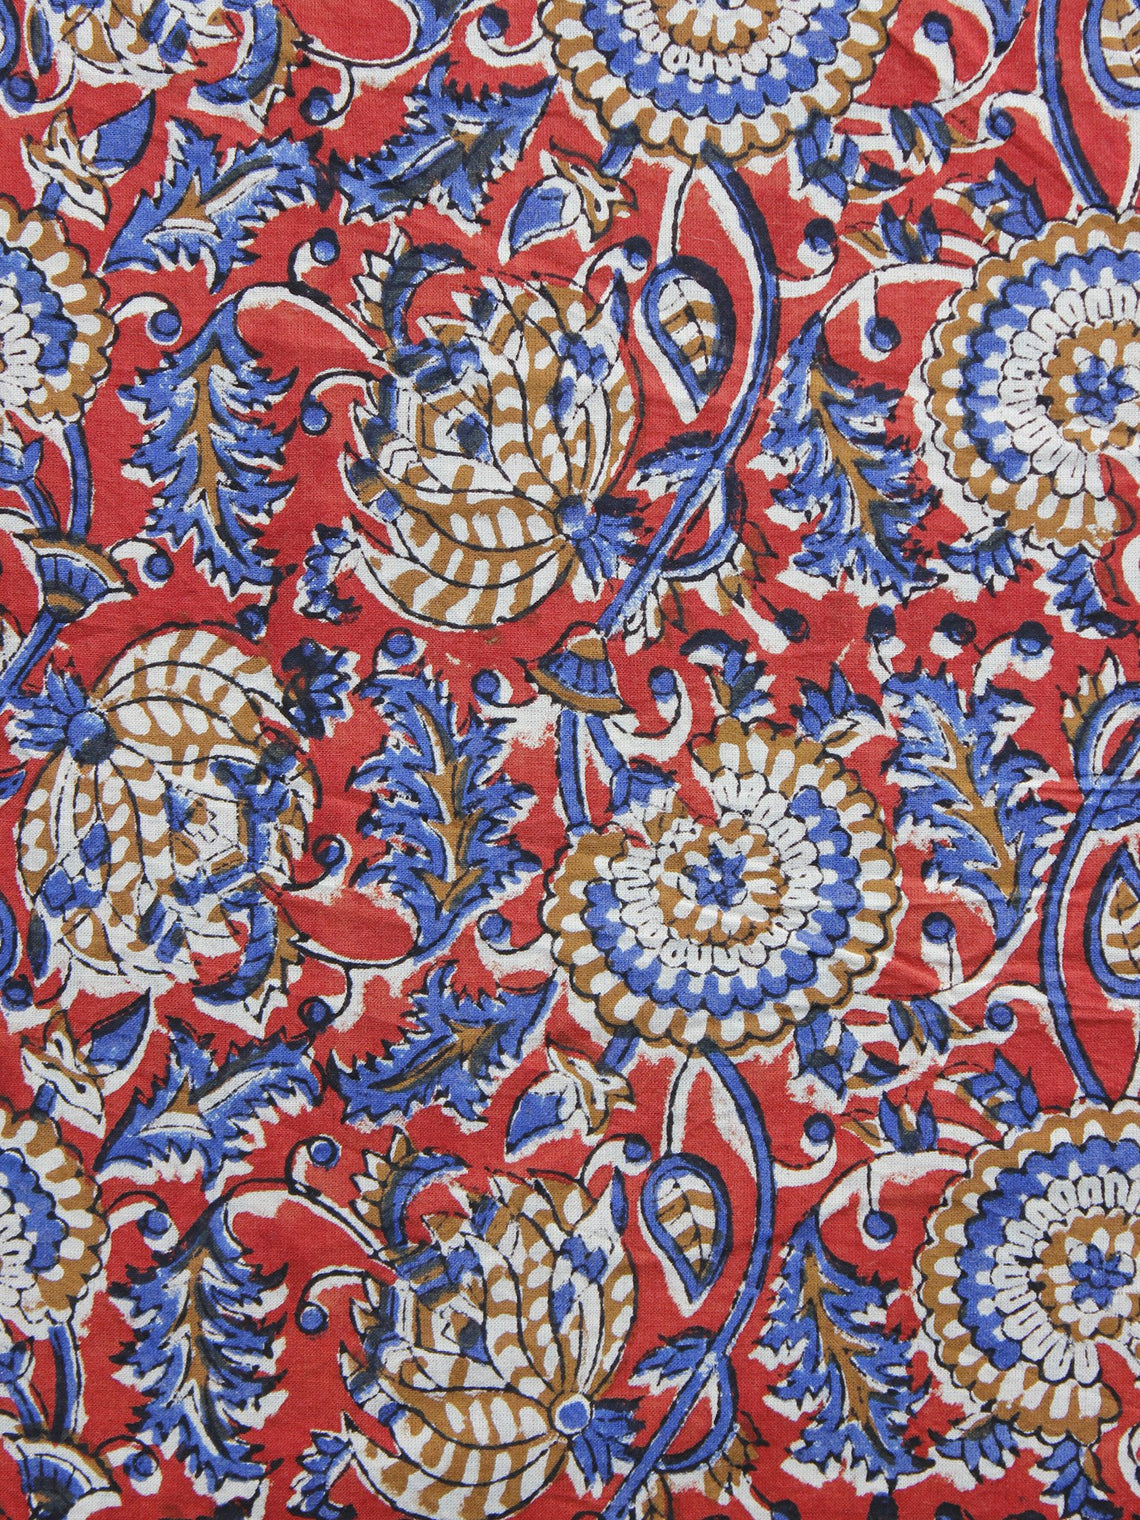 Red Blue Peanut Brown Hand Block Printed Cotton Fabric Per Meter - F003F1216